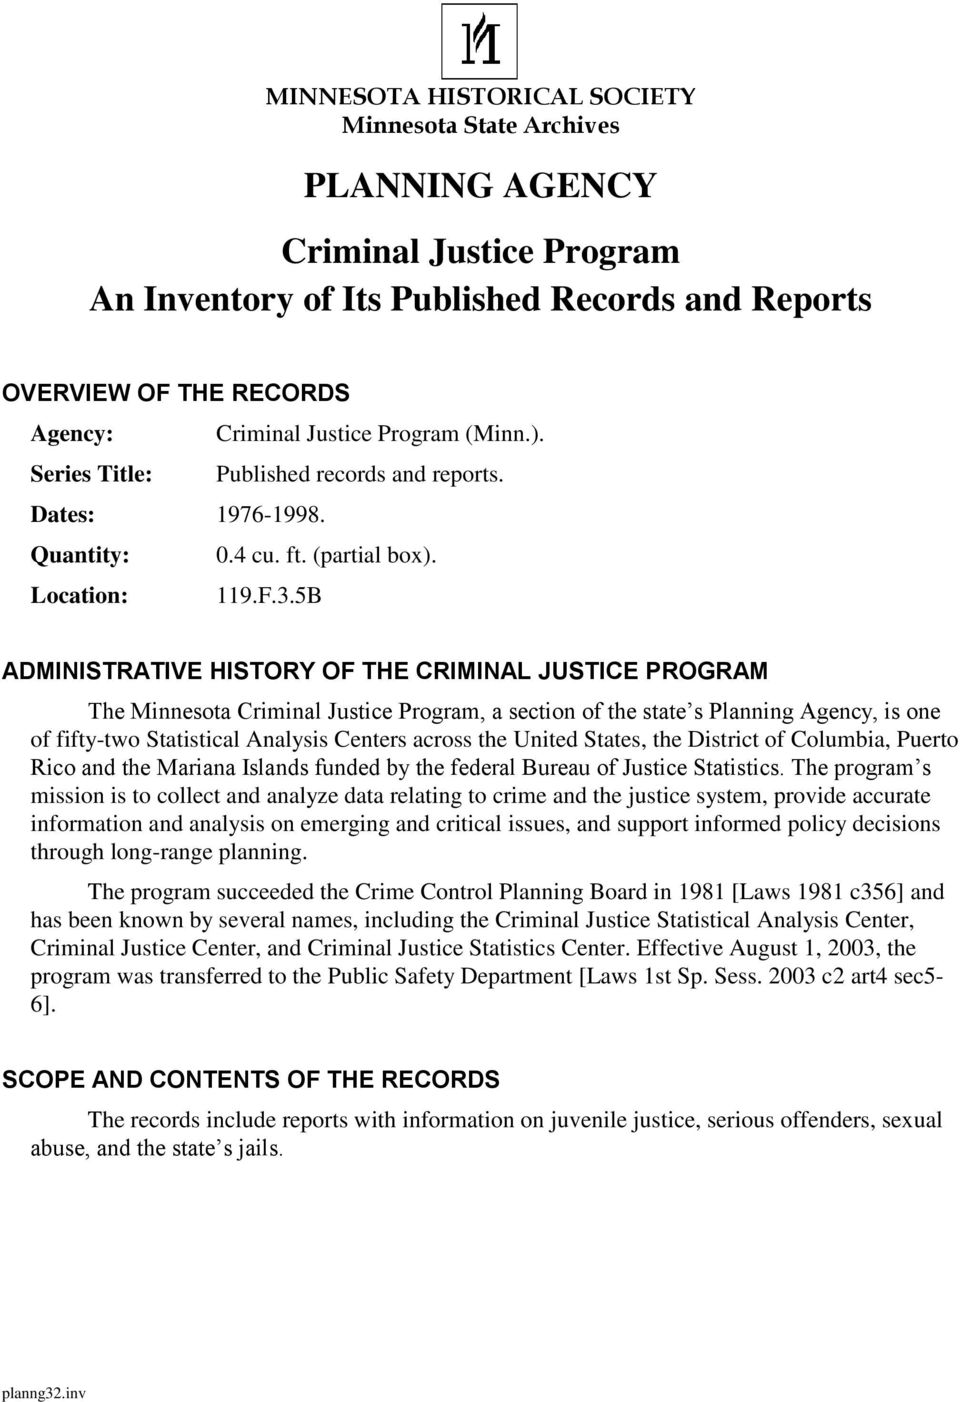 : ADMINISTRATIVE HISTORY OF THE CRIMINAL JUSTICE PROGRAM The Minnesota Criminal Justice Program, a section of the state s Planning Agency, is one of fifty-two Statistical Analysis Centers across the